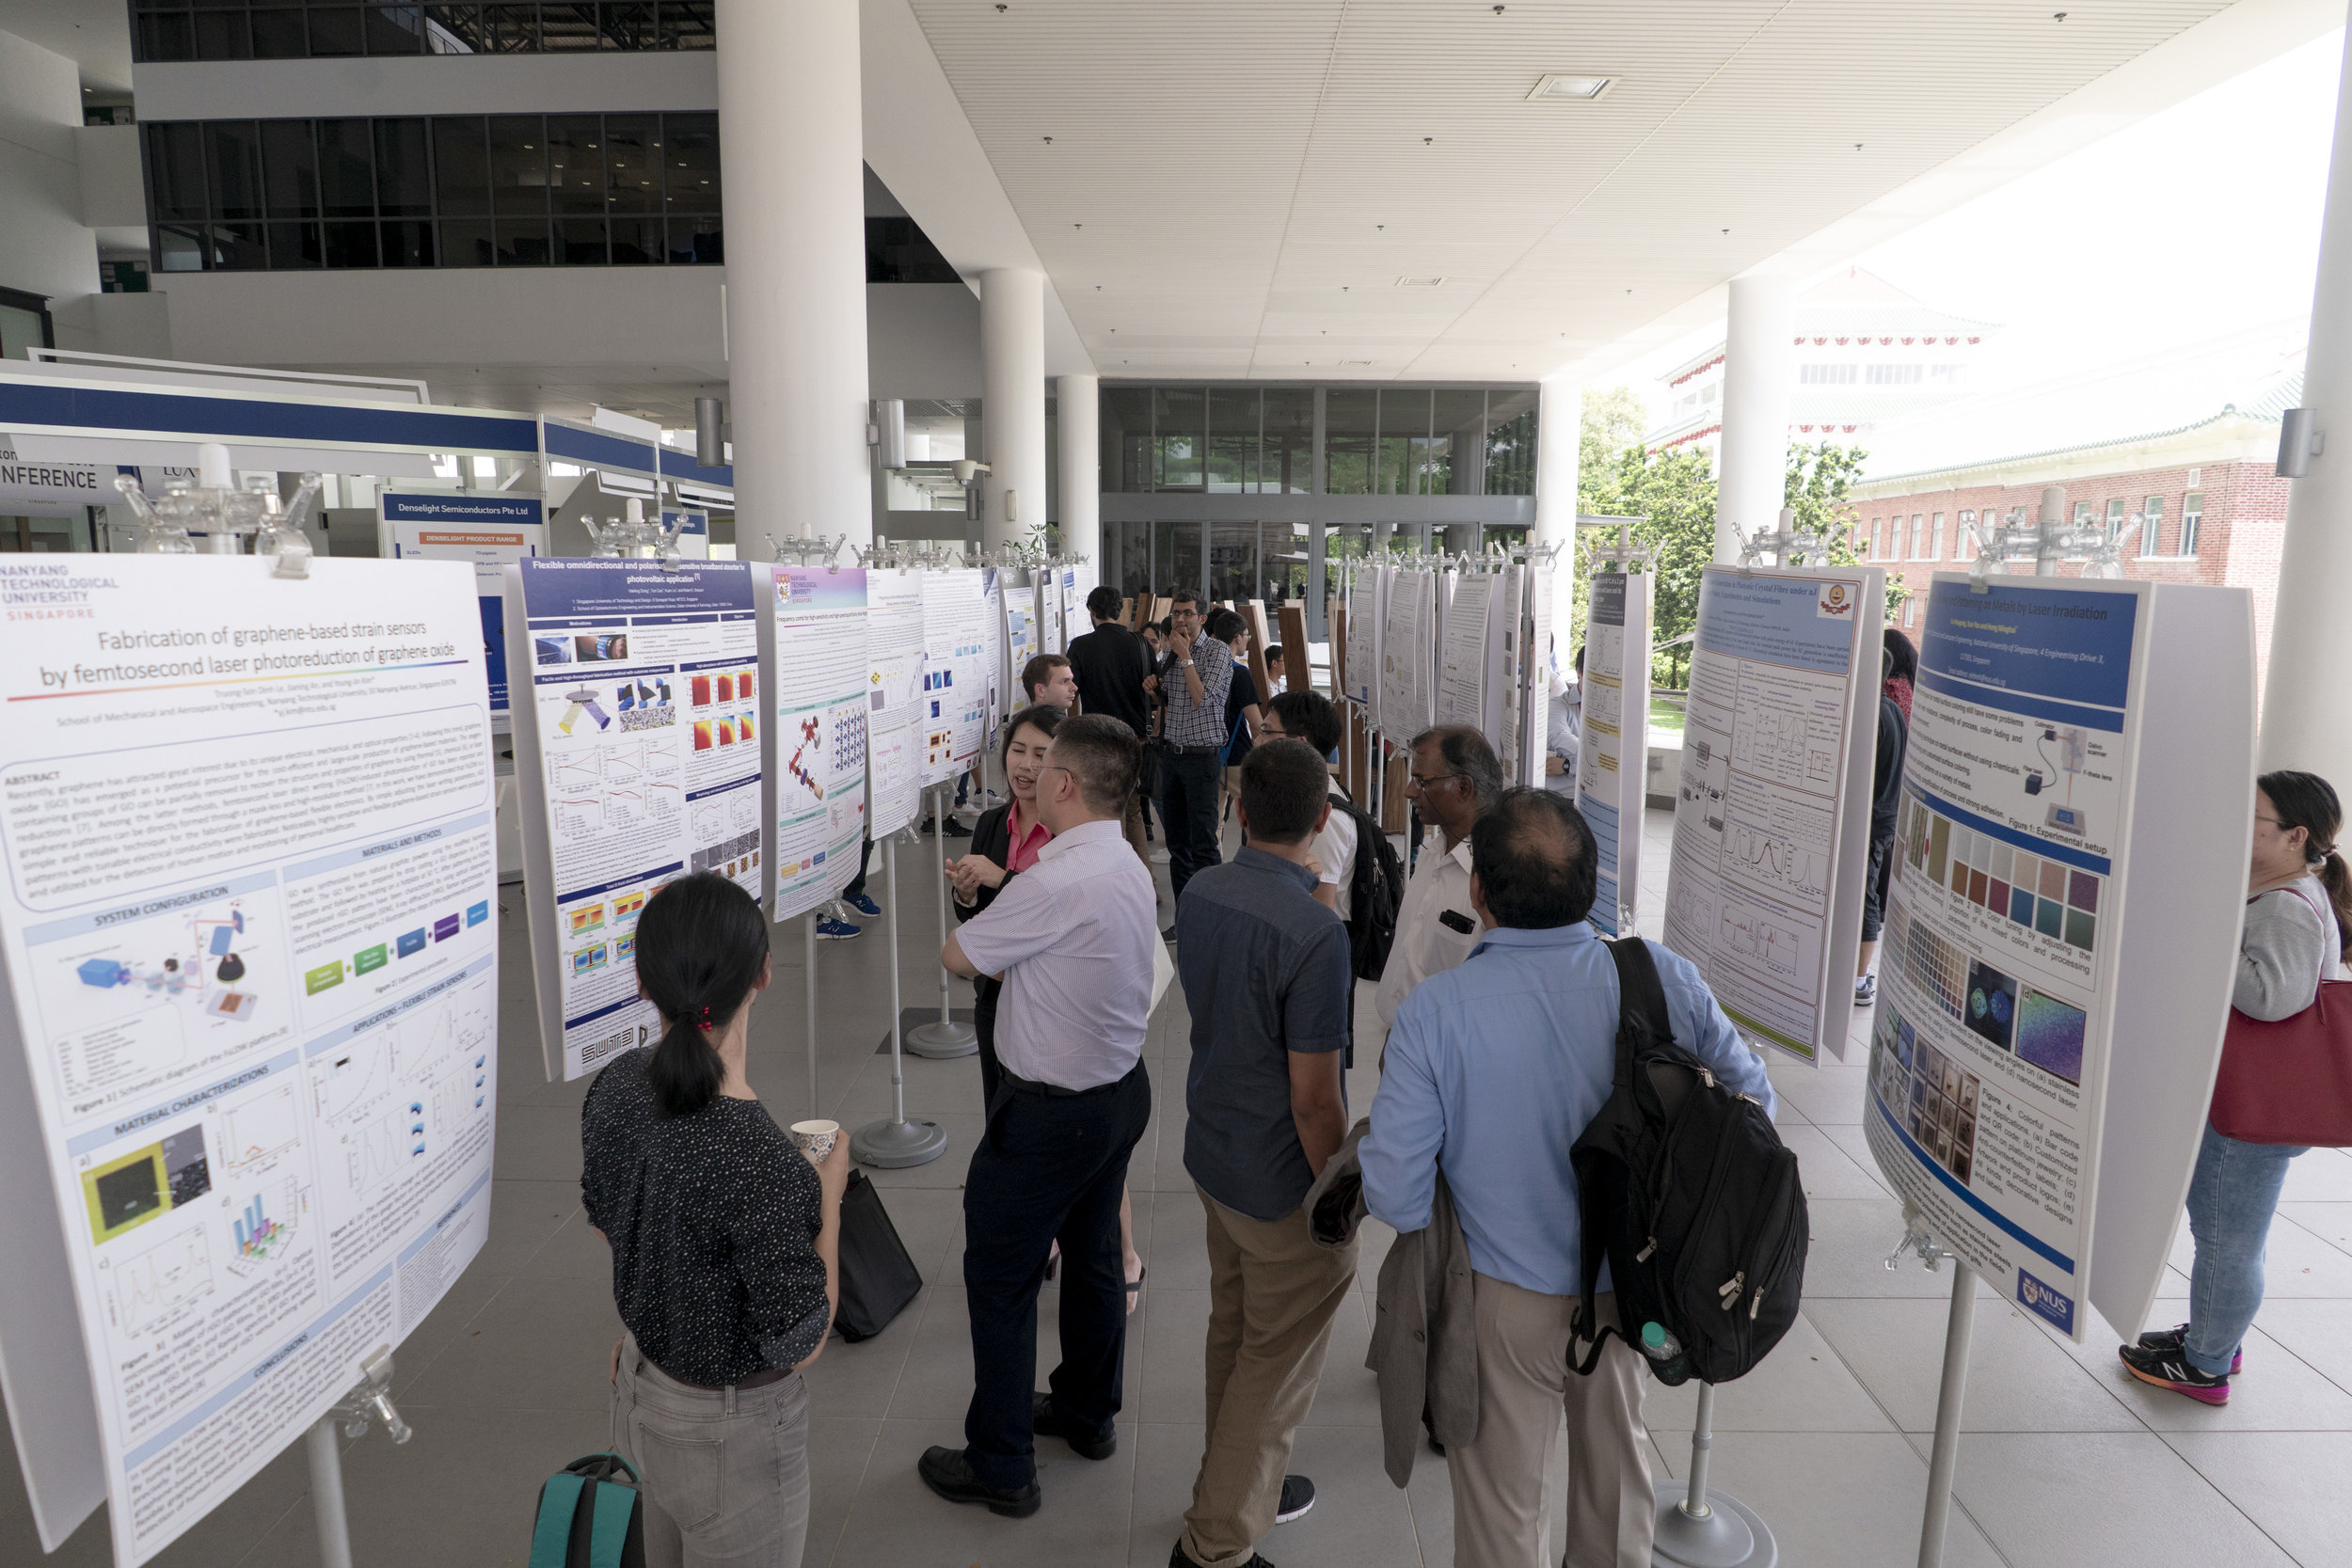 TPI Photonics SG 2018 Conference n Exhibition 0333rc.jpg